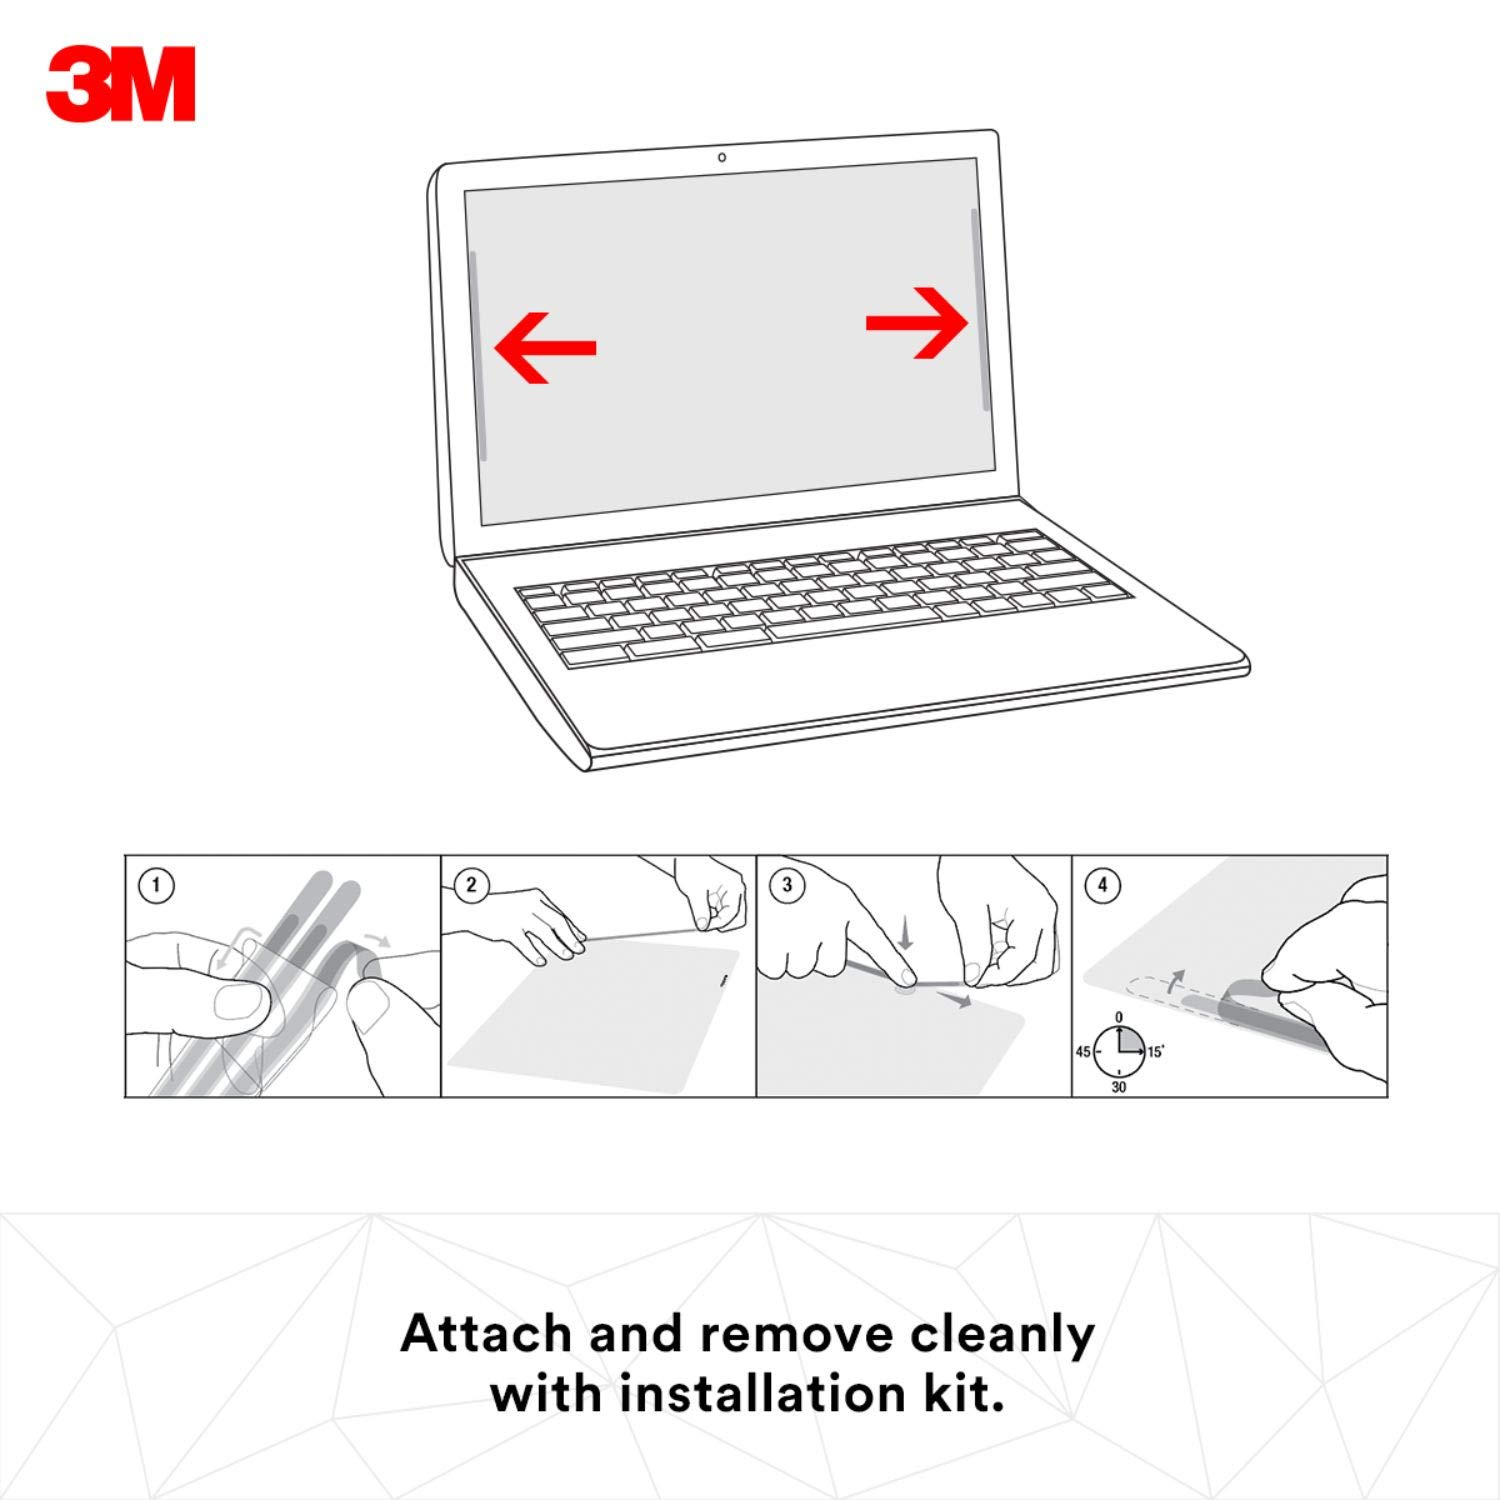 3M Privacy Filter for 15.6'' Edge-to-Edge Widescreen Laptop (PF156W9E) by 3M (Image #5)